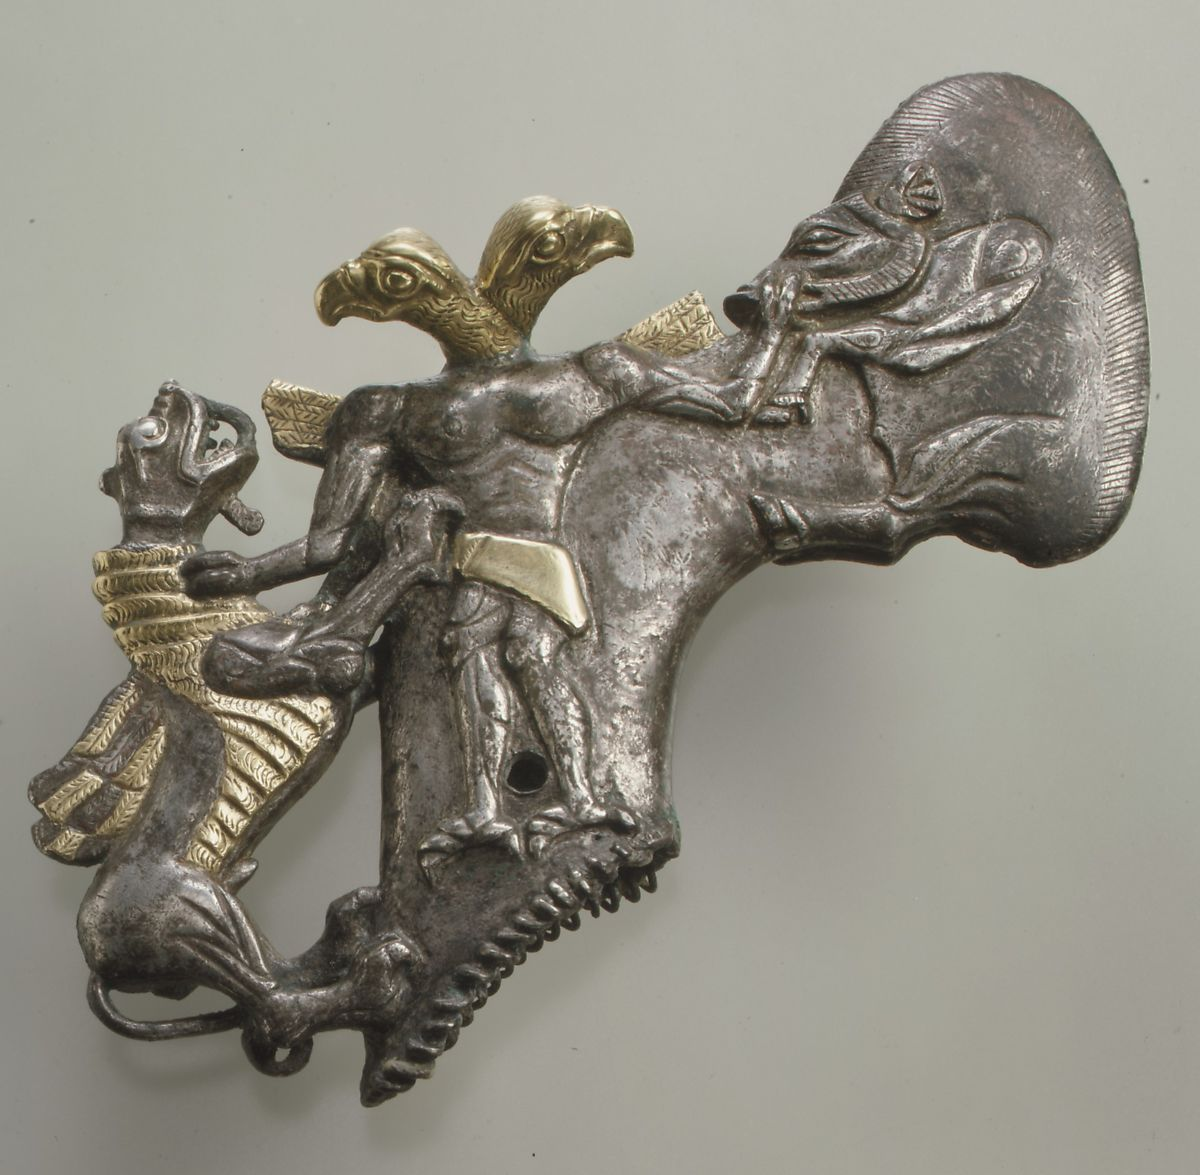 Shaft-hole axe head with bird-headed demon, boar, and dragon | Bactria-Margiana Archaeological Complex | Bronze Age | The Met